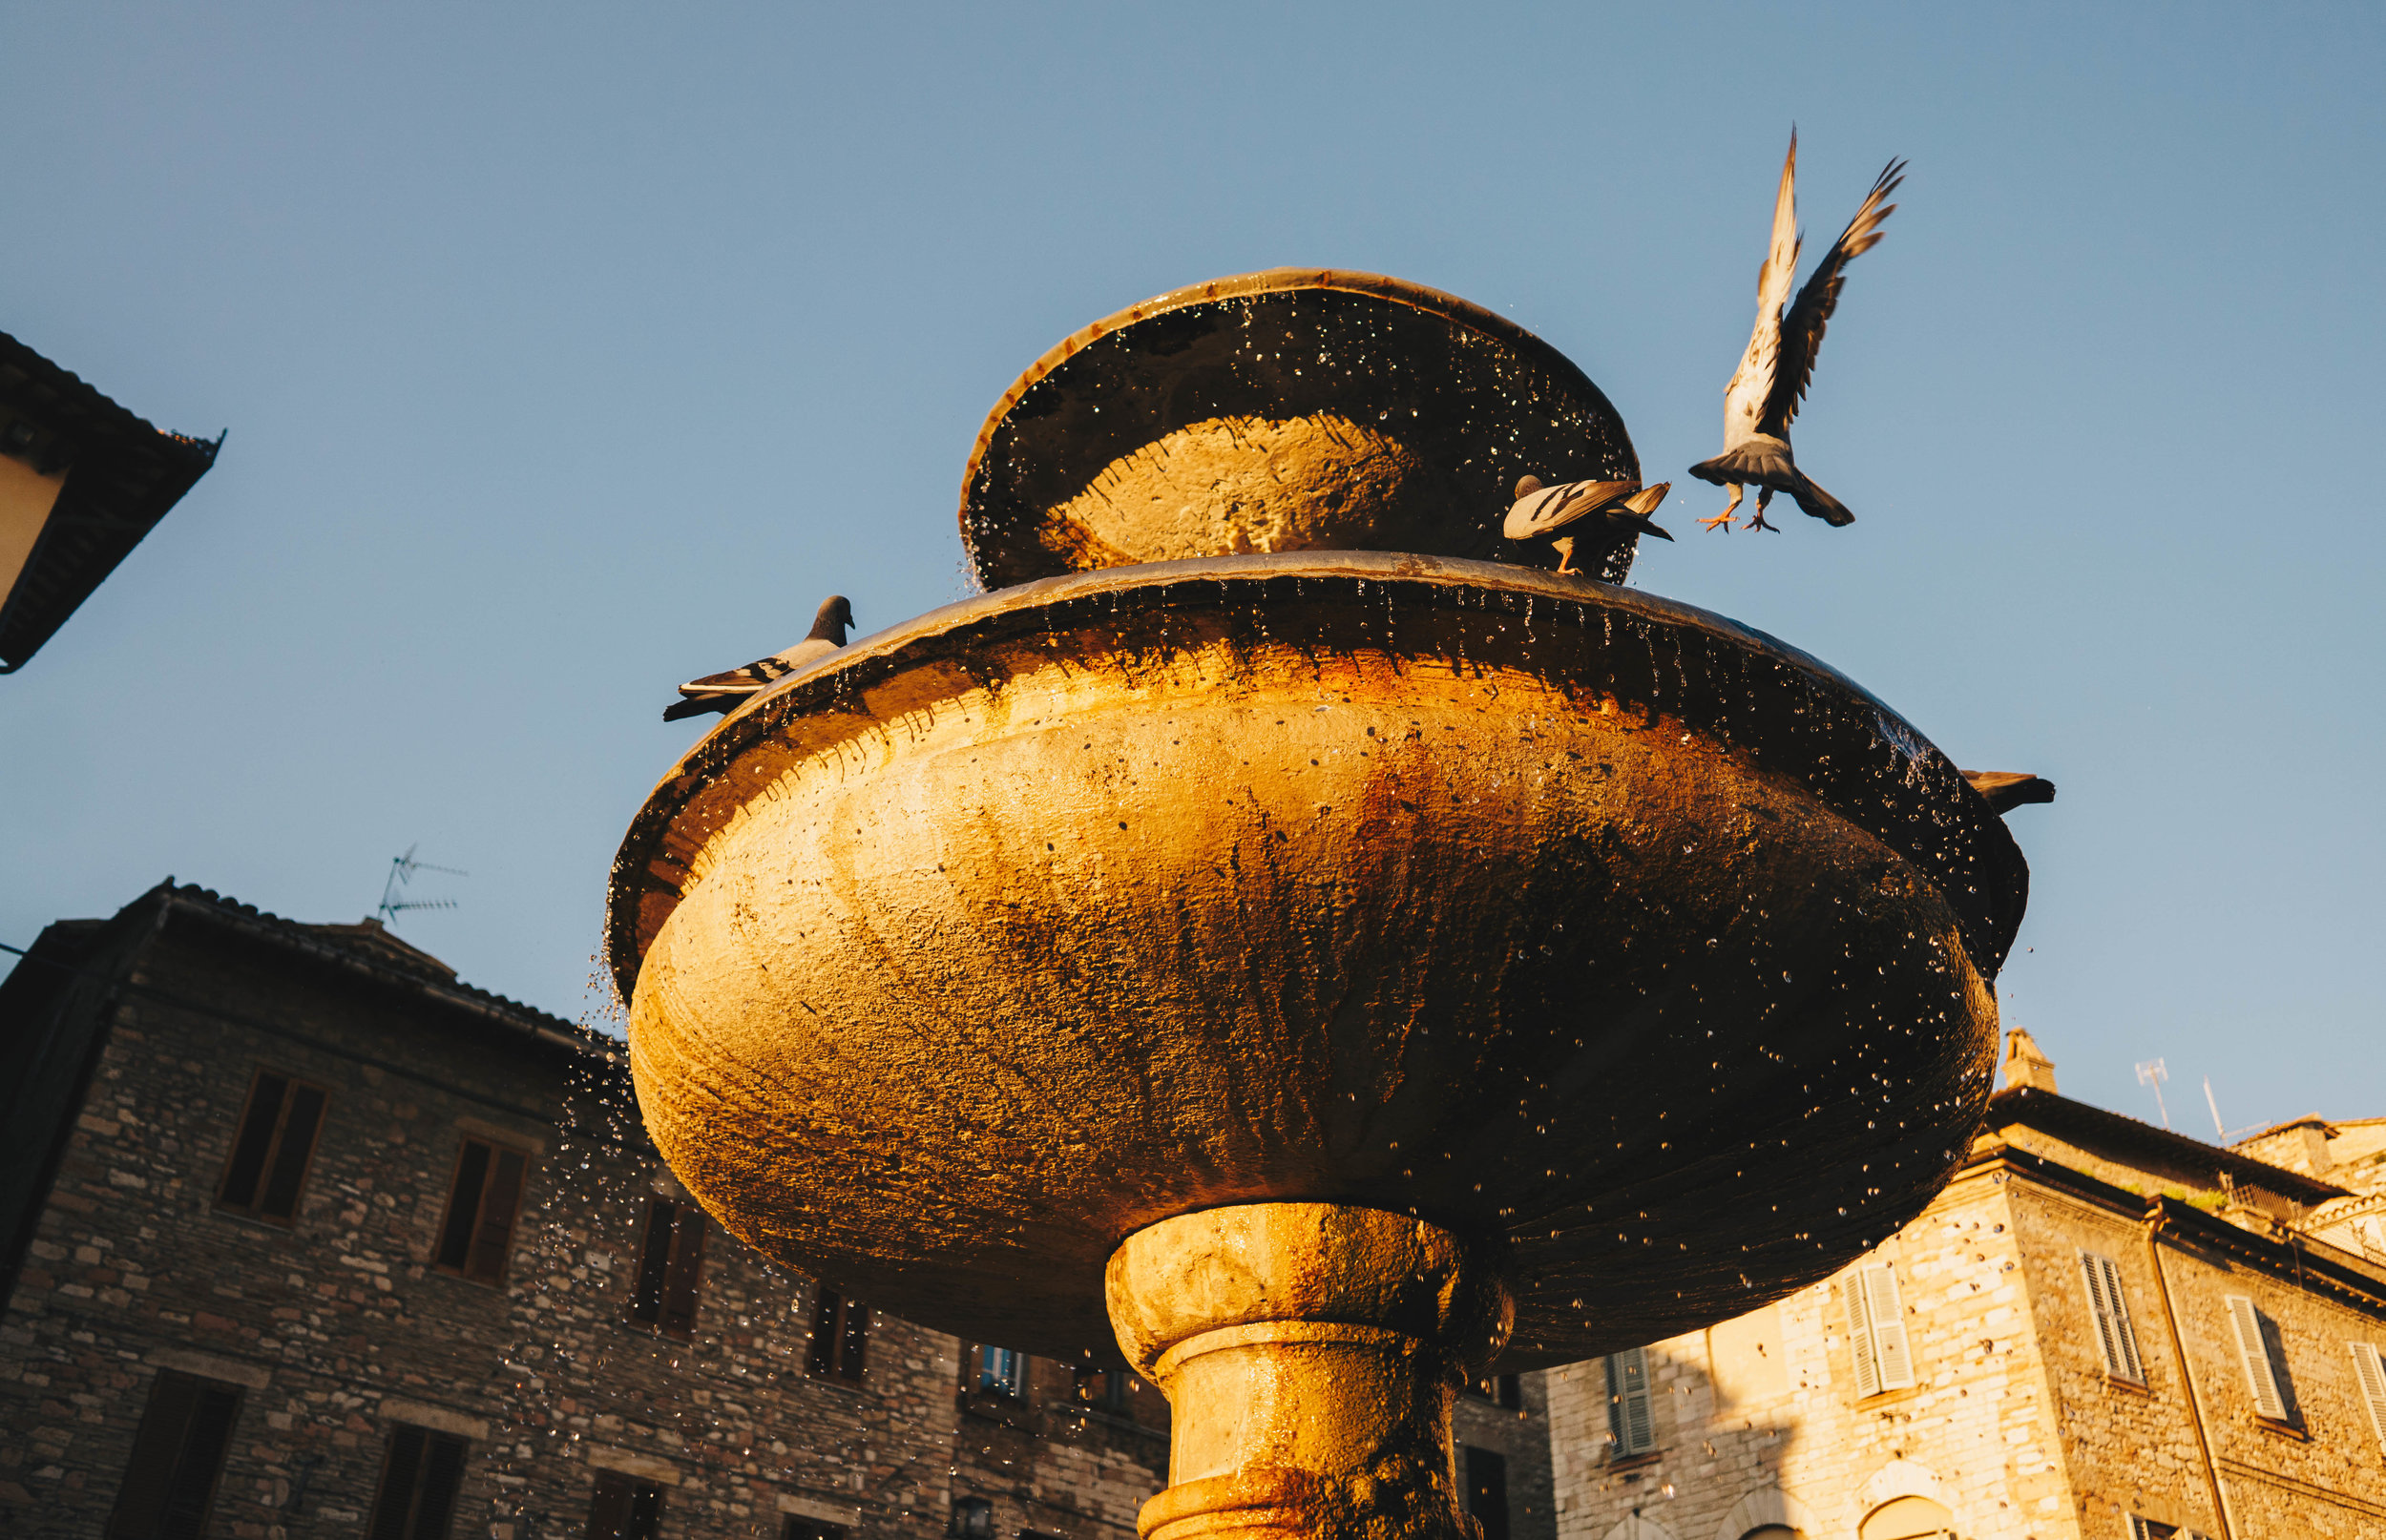 laurentina-photography-assisi-italy-fontana